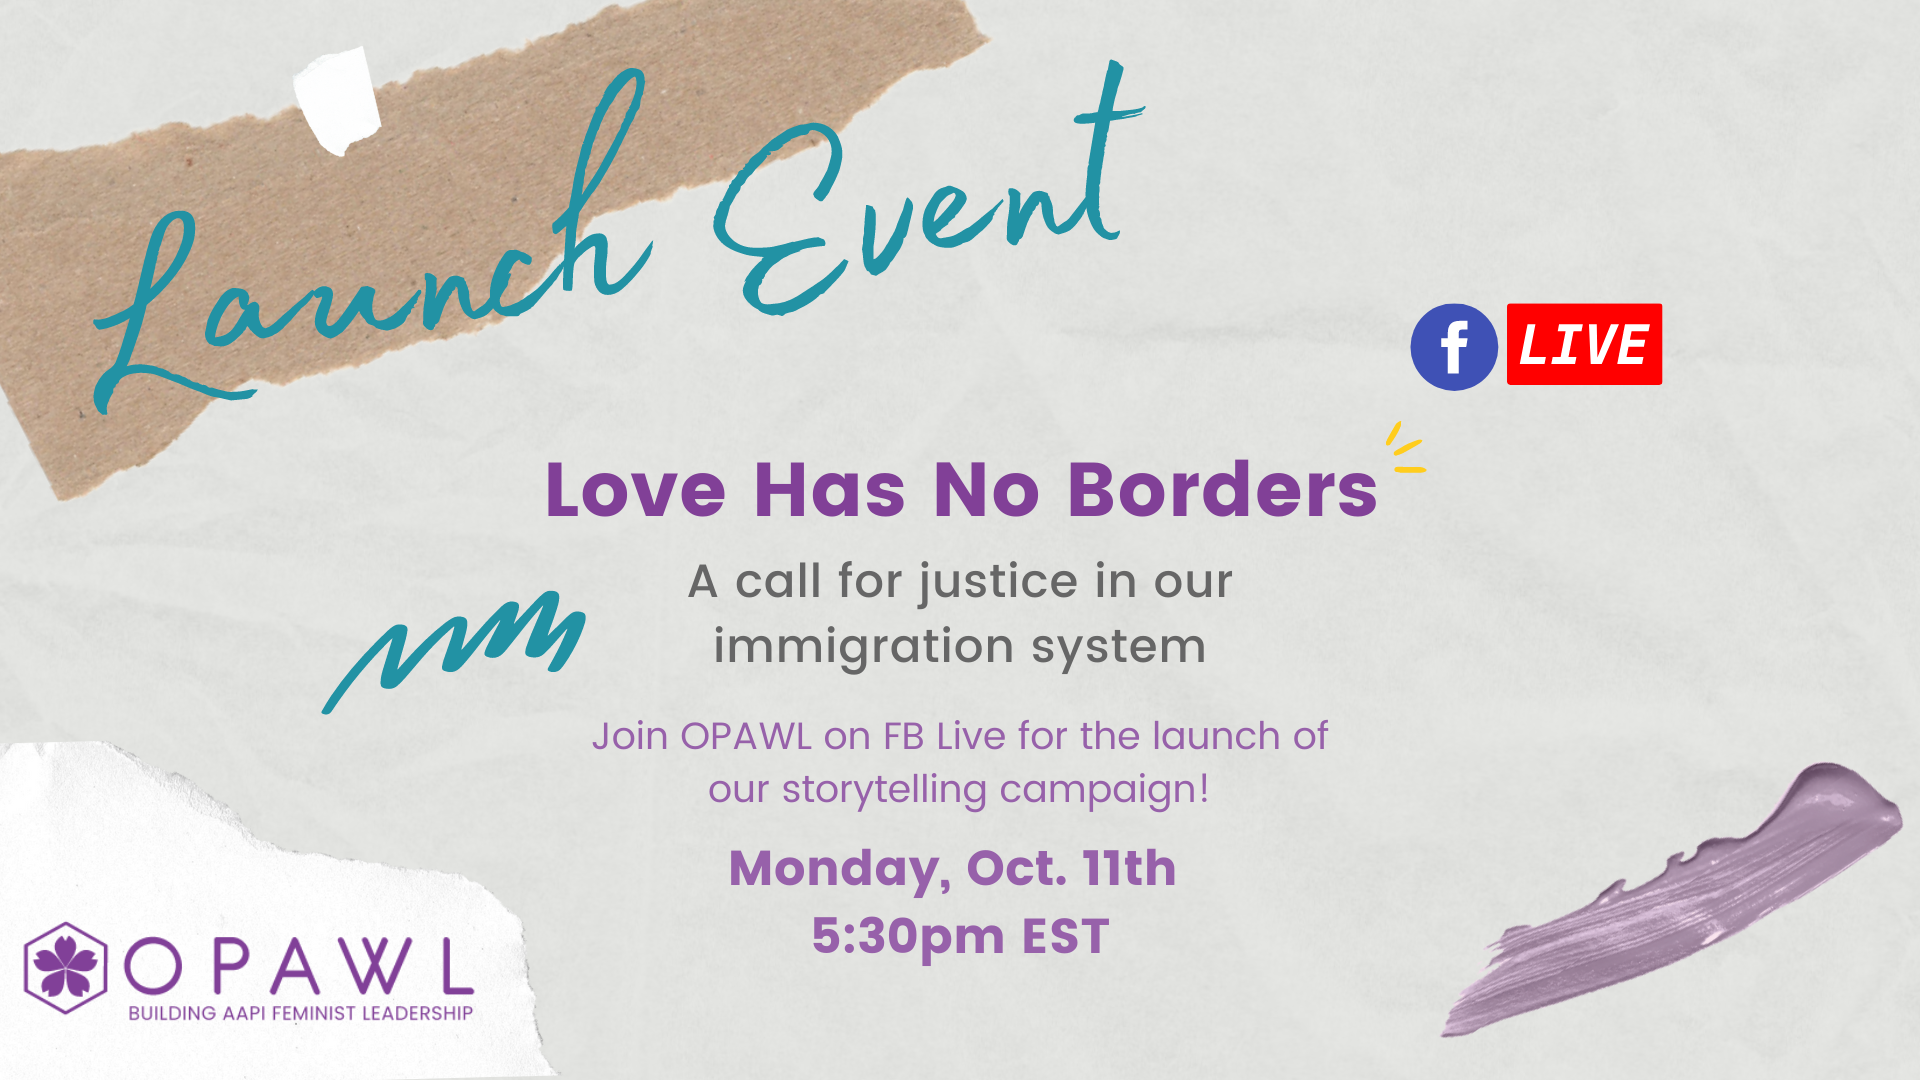 """Light gray background with torn paper and blue marks. Text saying """" Launch Event. Love Has No Borders: a call for justice in our immigration system. Join OPAWL on FB live for the launch of our storytelling campaign! Monday, Oct. 11th, 5:30 pm EST"""". Purple OPAWL logo is in the bottom left corner"""